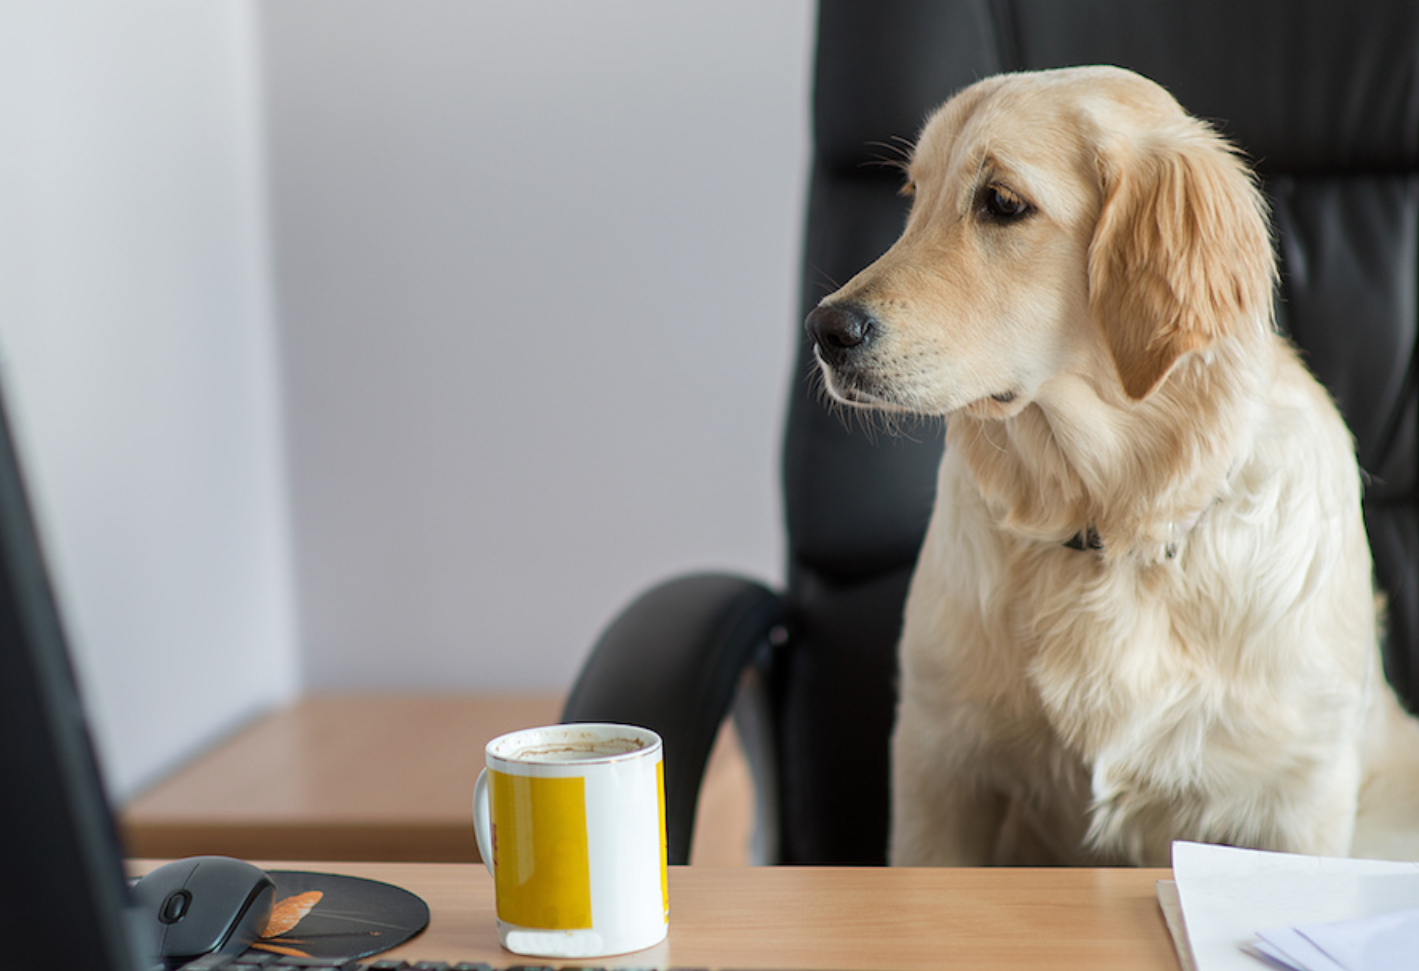 Pet insurance is one of the fastest-growing employee benefits.